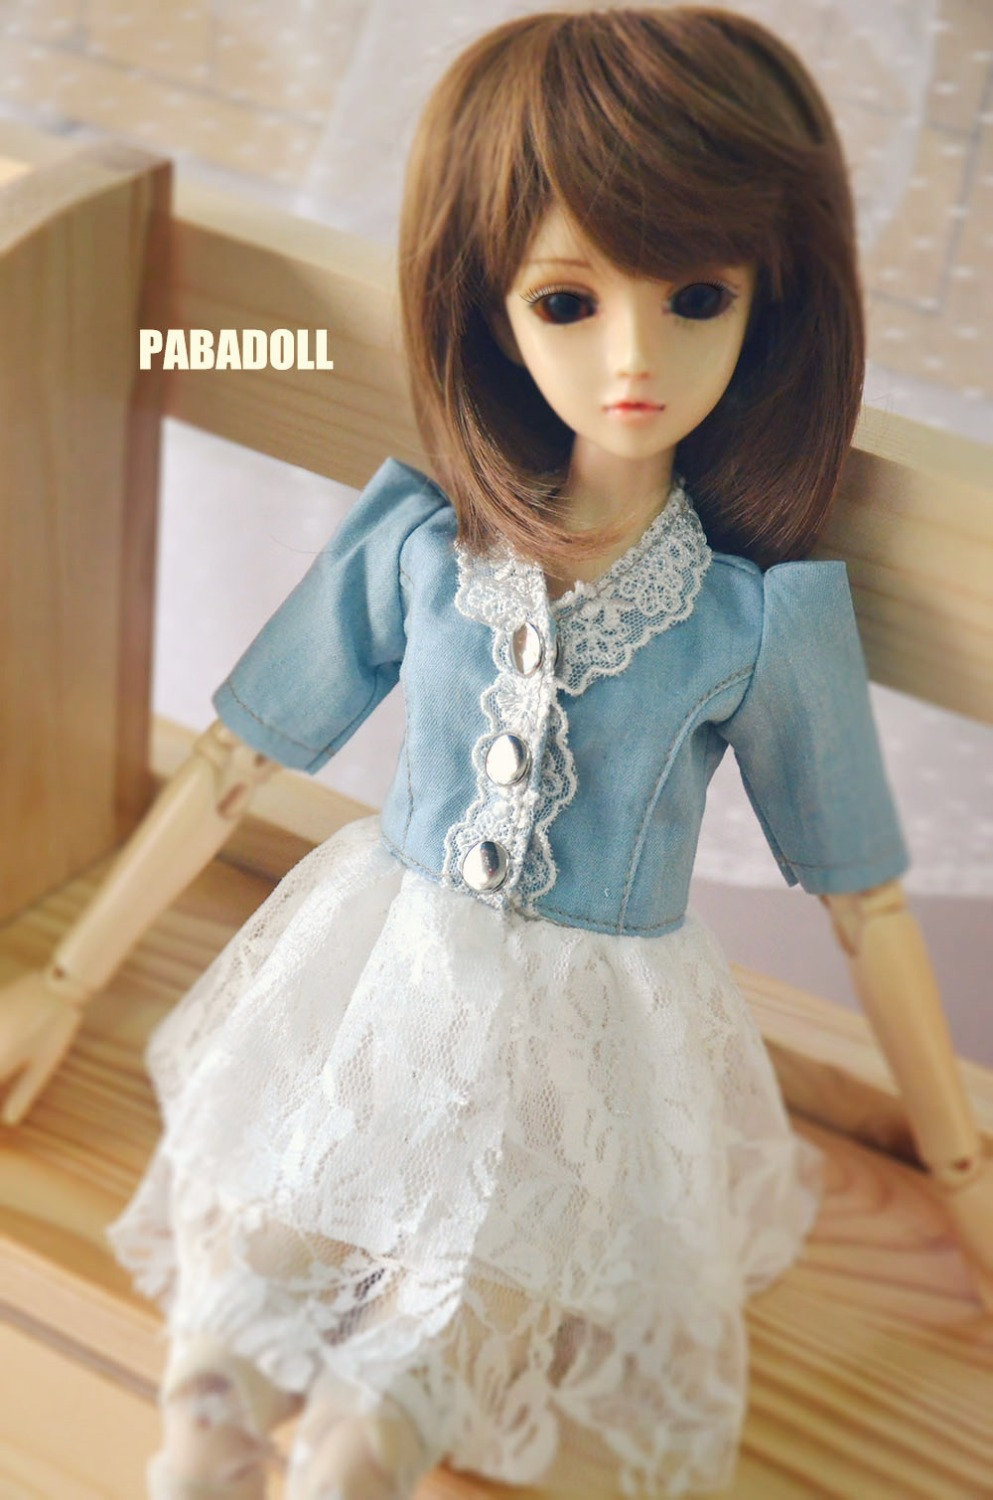 New BJD Doll Jeans Lace Dress for Bjd doll 1/6YOSD 1/4 MSD,1/3,SD10 SD13,SD16 IP EID Luts DOD,SD Doll Clothes CWB21 free match stockings for bjd 1 6 1 4 1 3 sd16 dd sd luts dz as dod doll clothes accessories sk1